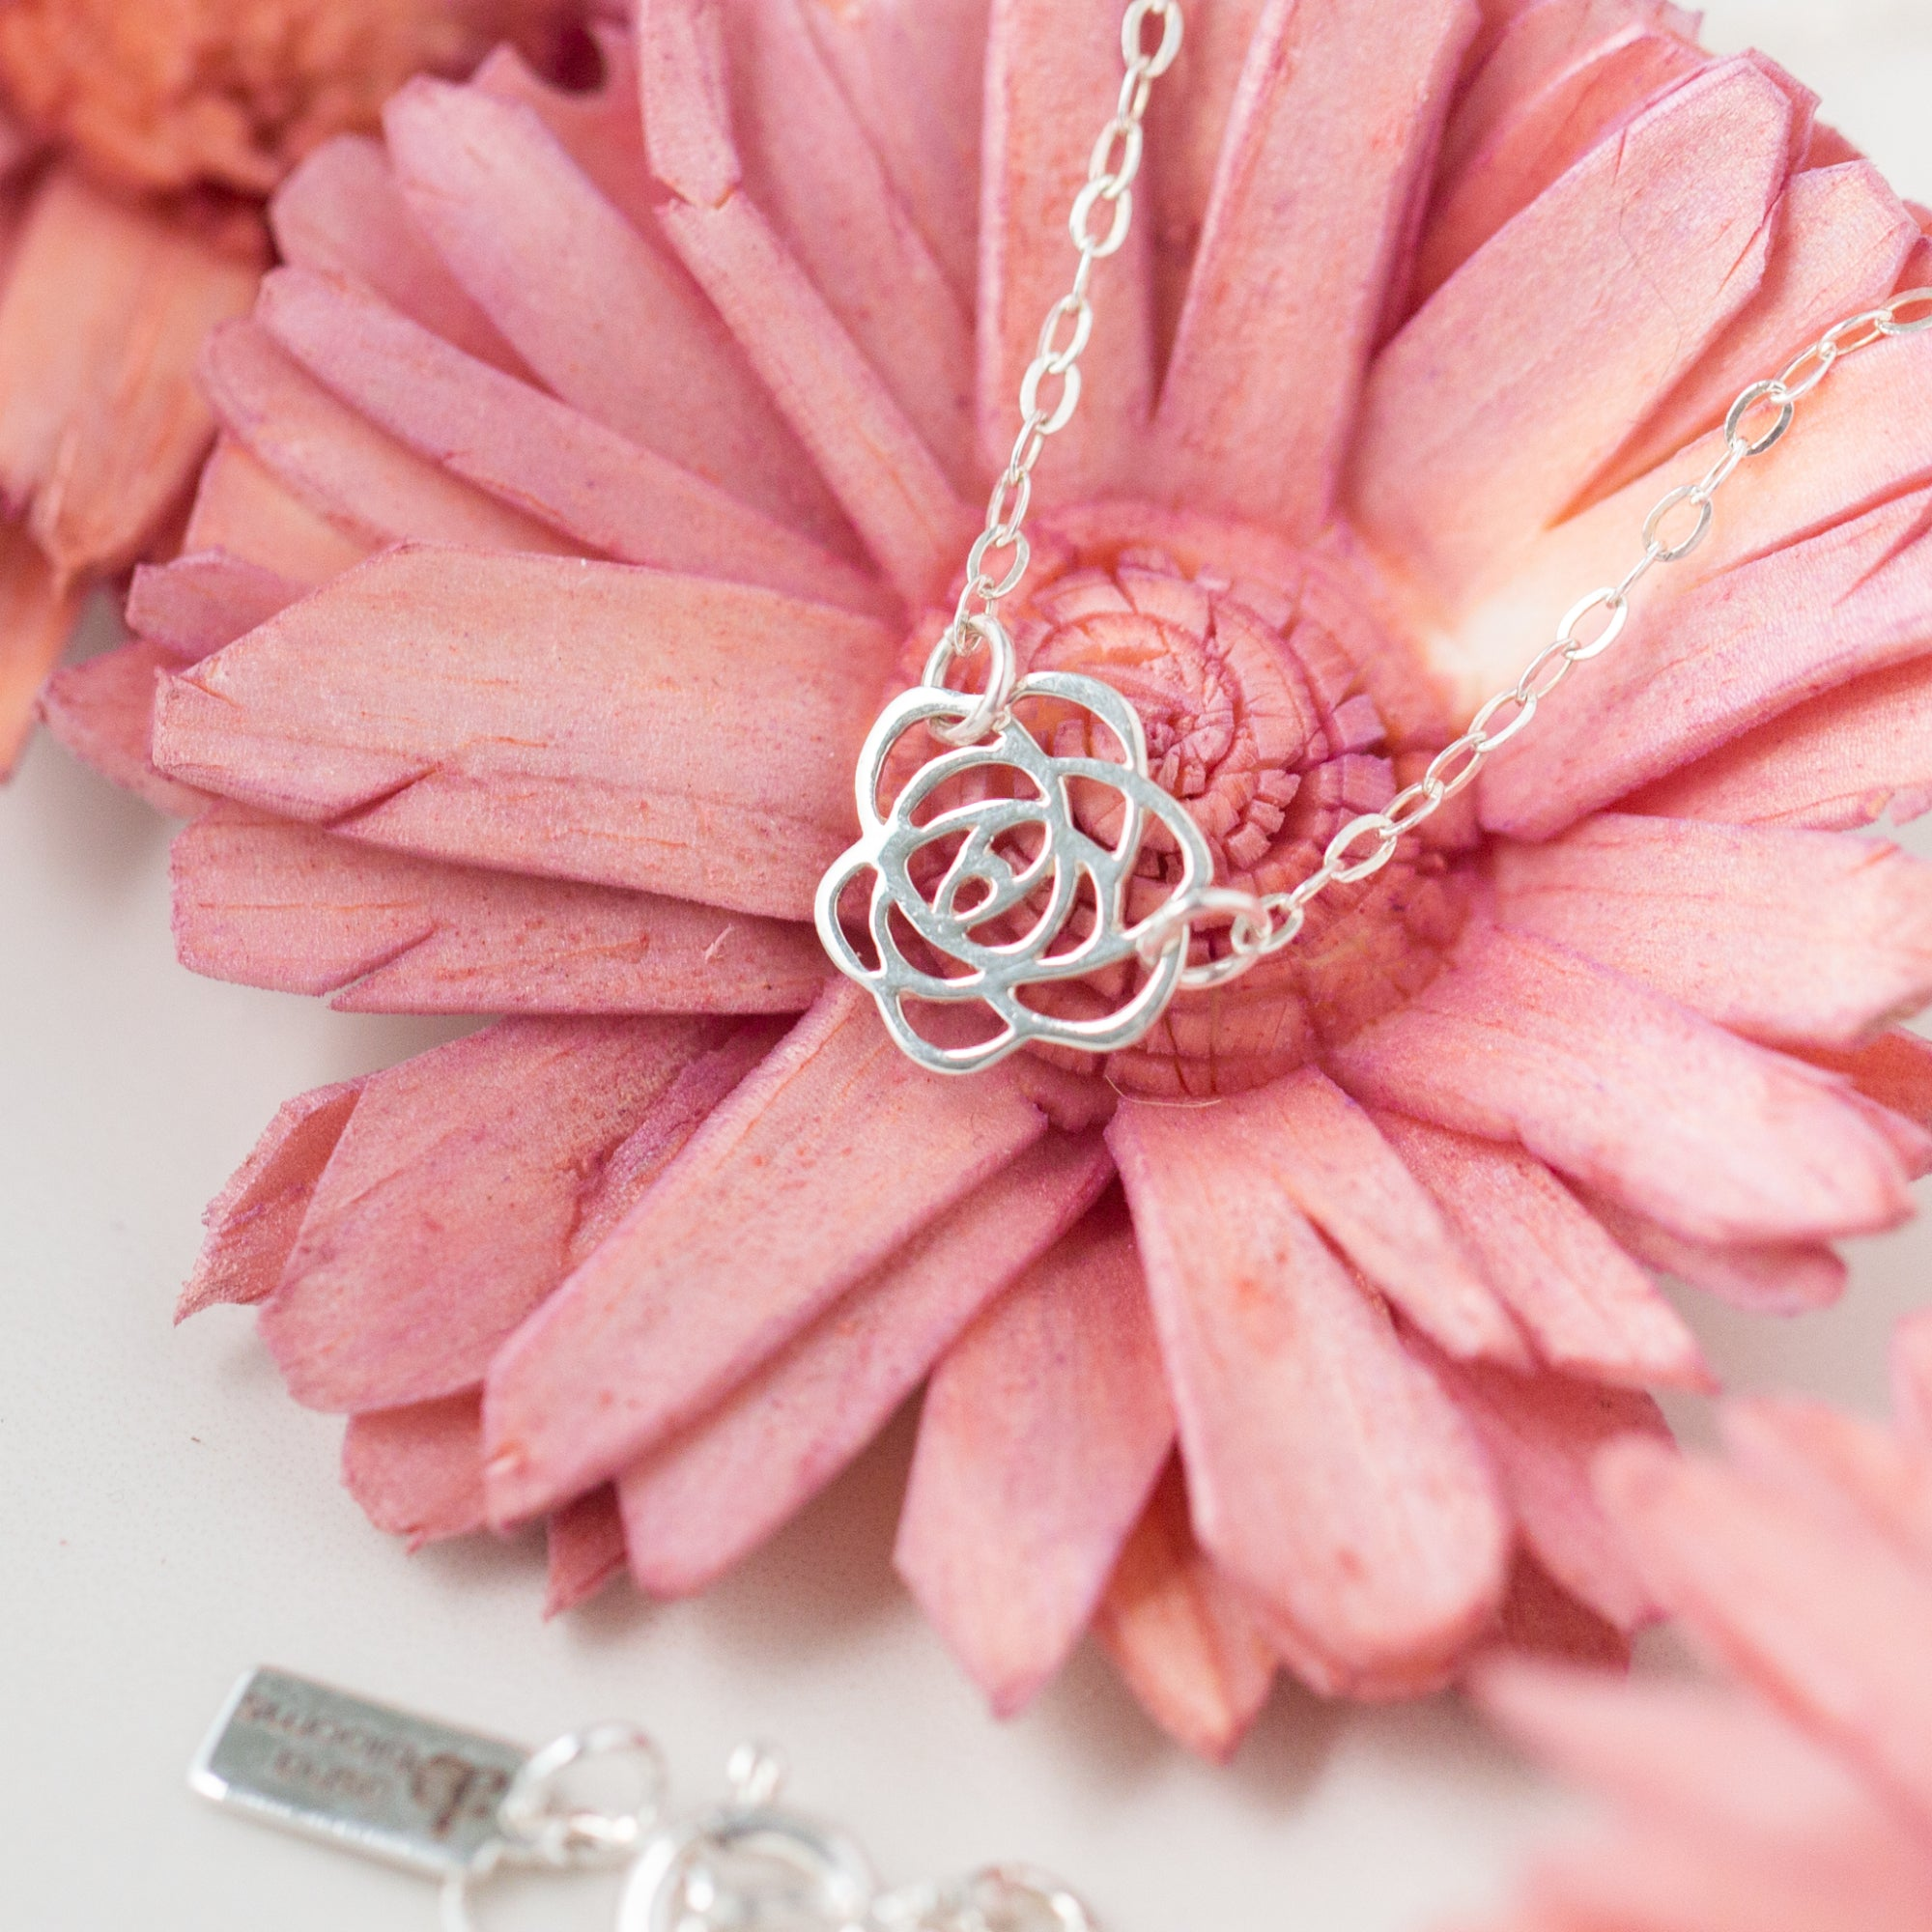 Close-up of Silver Rose Pendant Necklace 'Thank You' Flat Lay on Pink Flower Photo by Asha Blooms